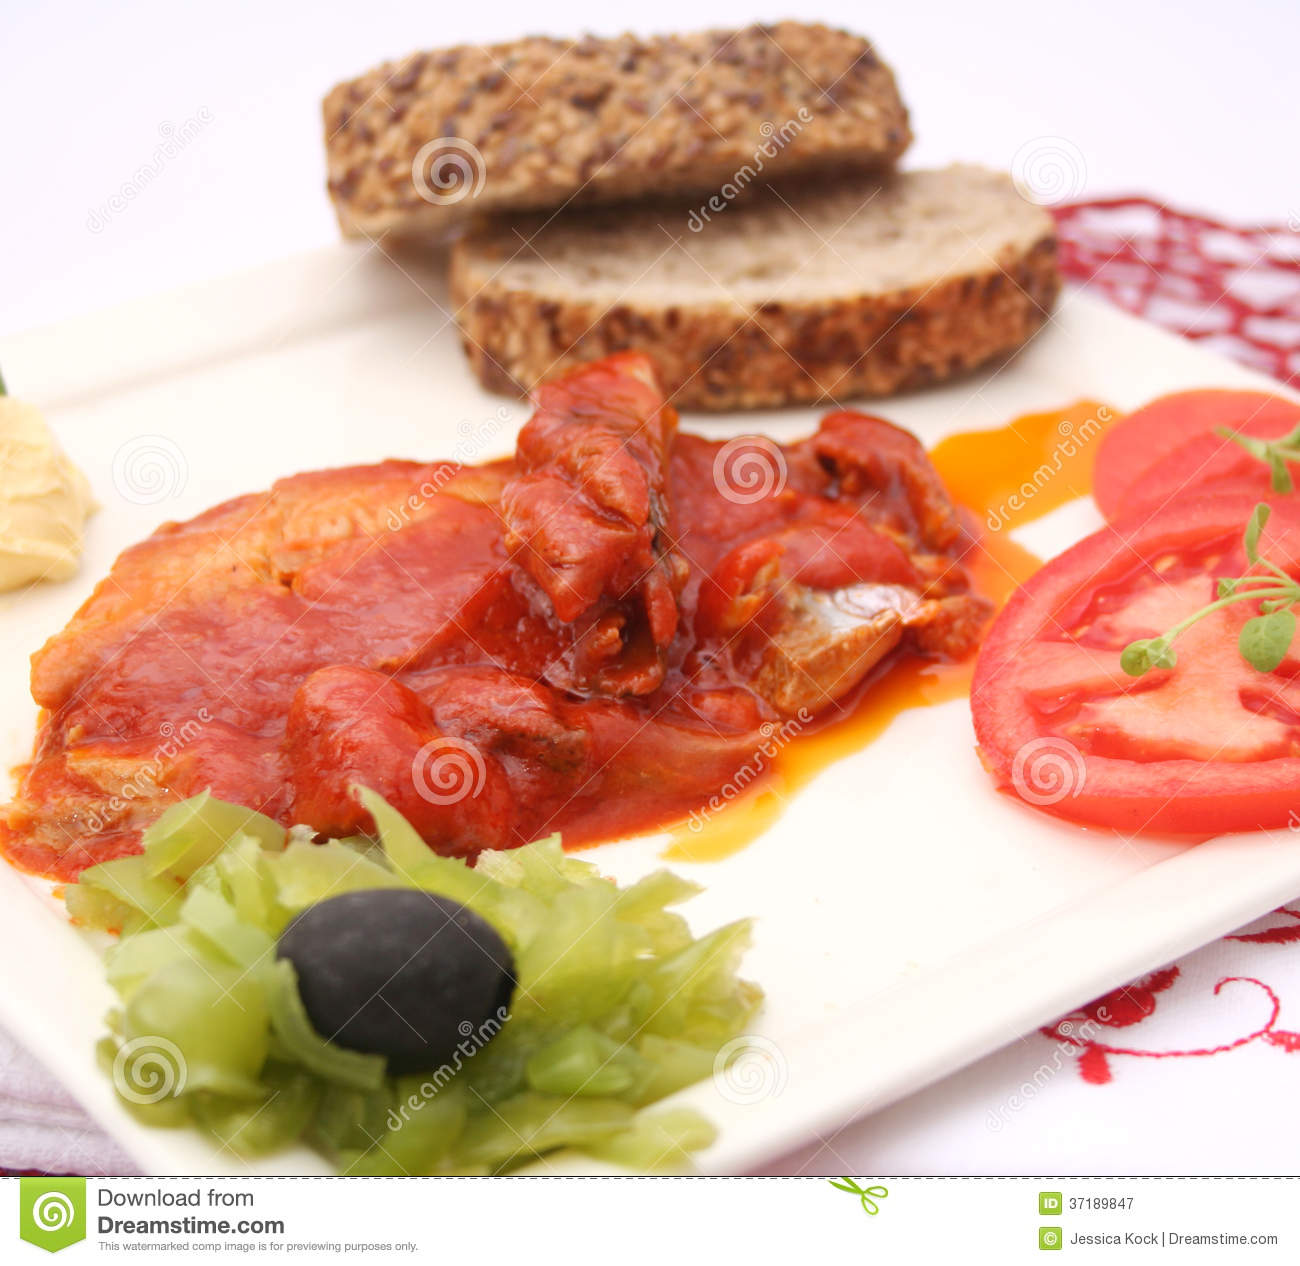 Fish in tomato sauce with tomato.